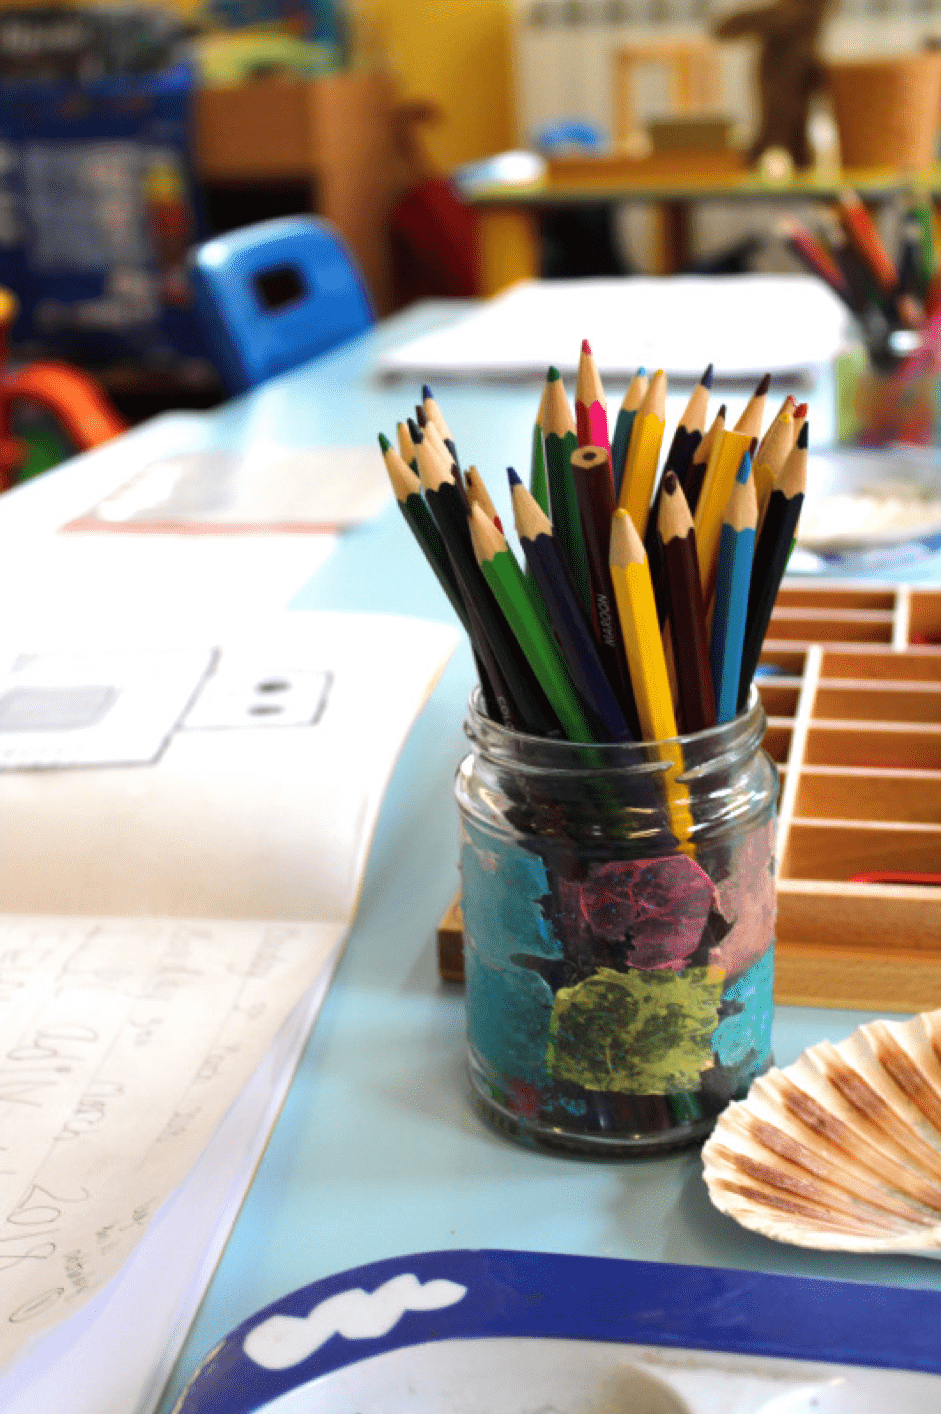 glass pot of colourful pencils on a desk